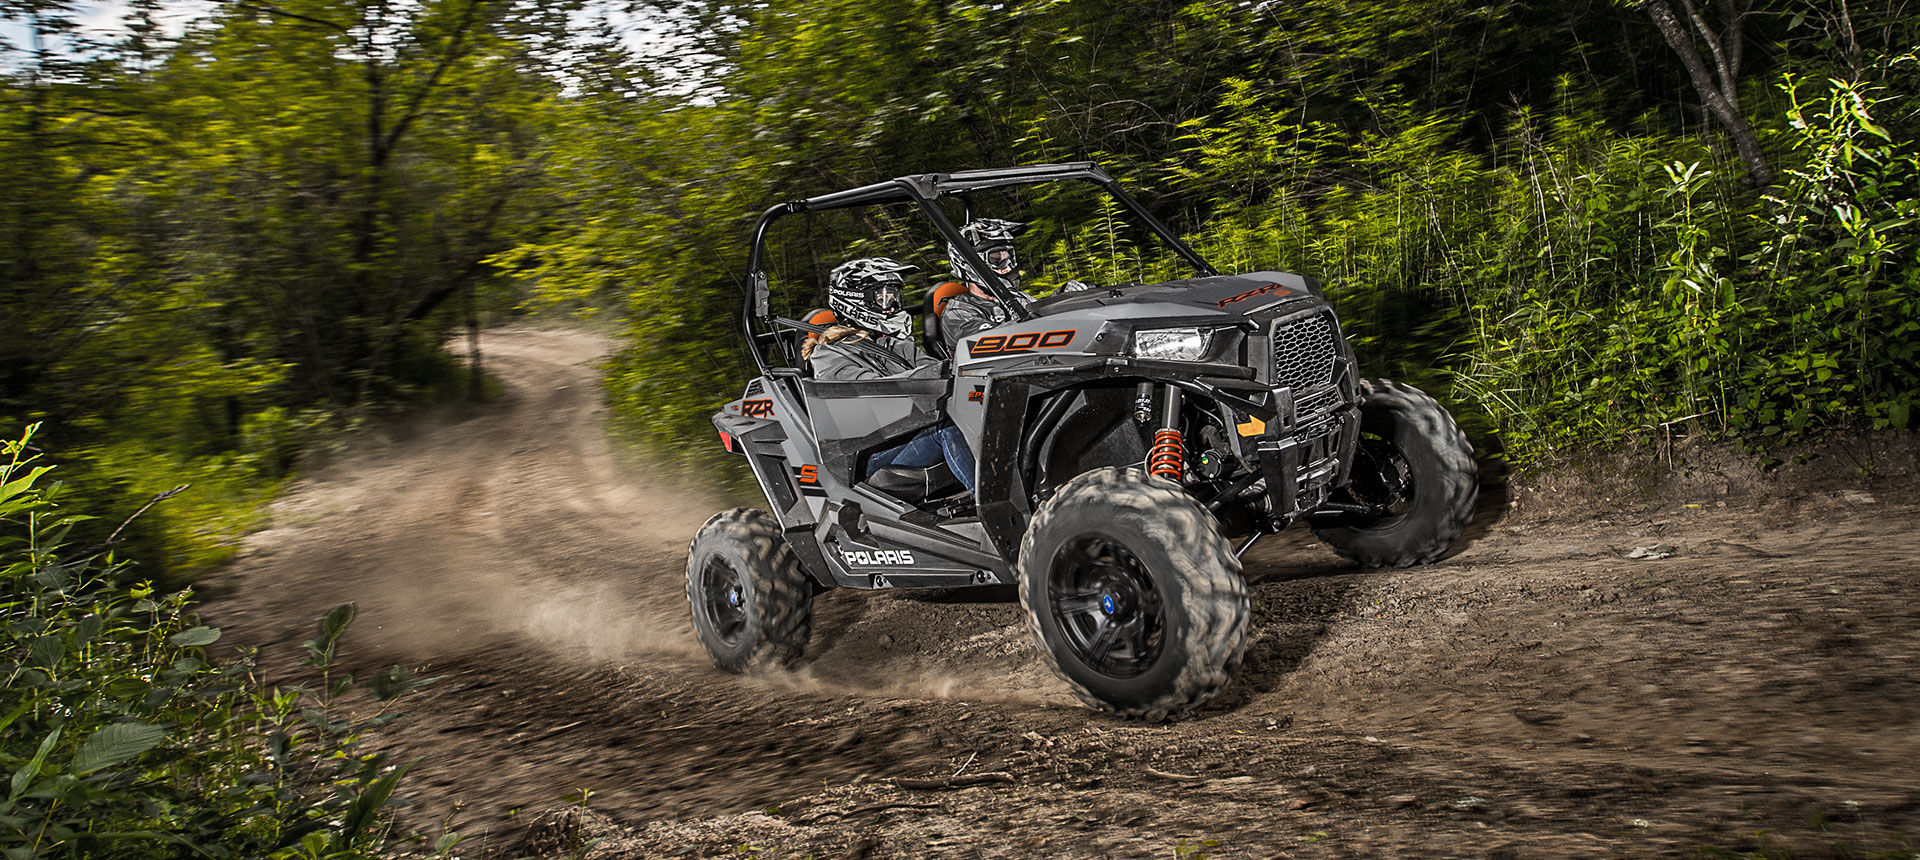 2019 Polaris RZR S 900 in Rapid City, South Dakota - Photo 7